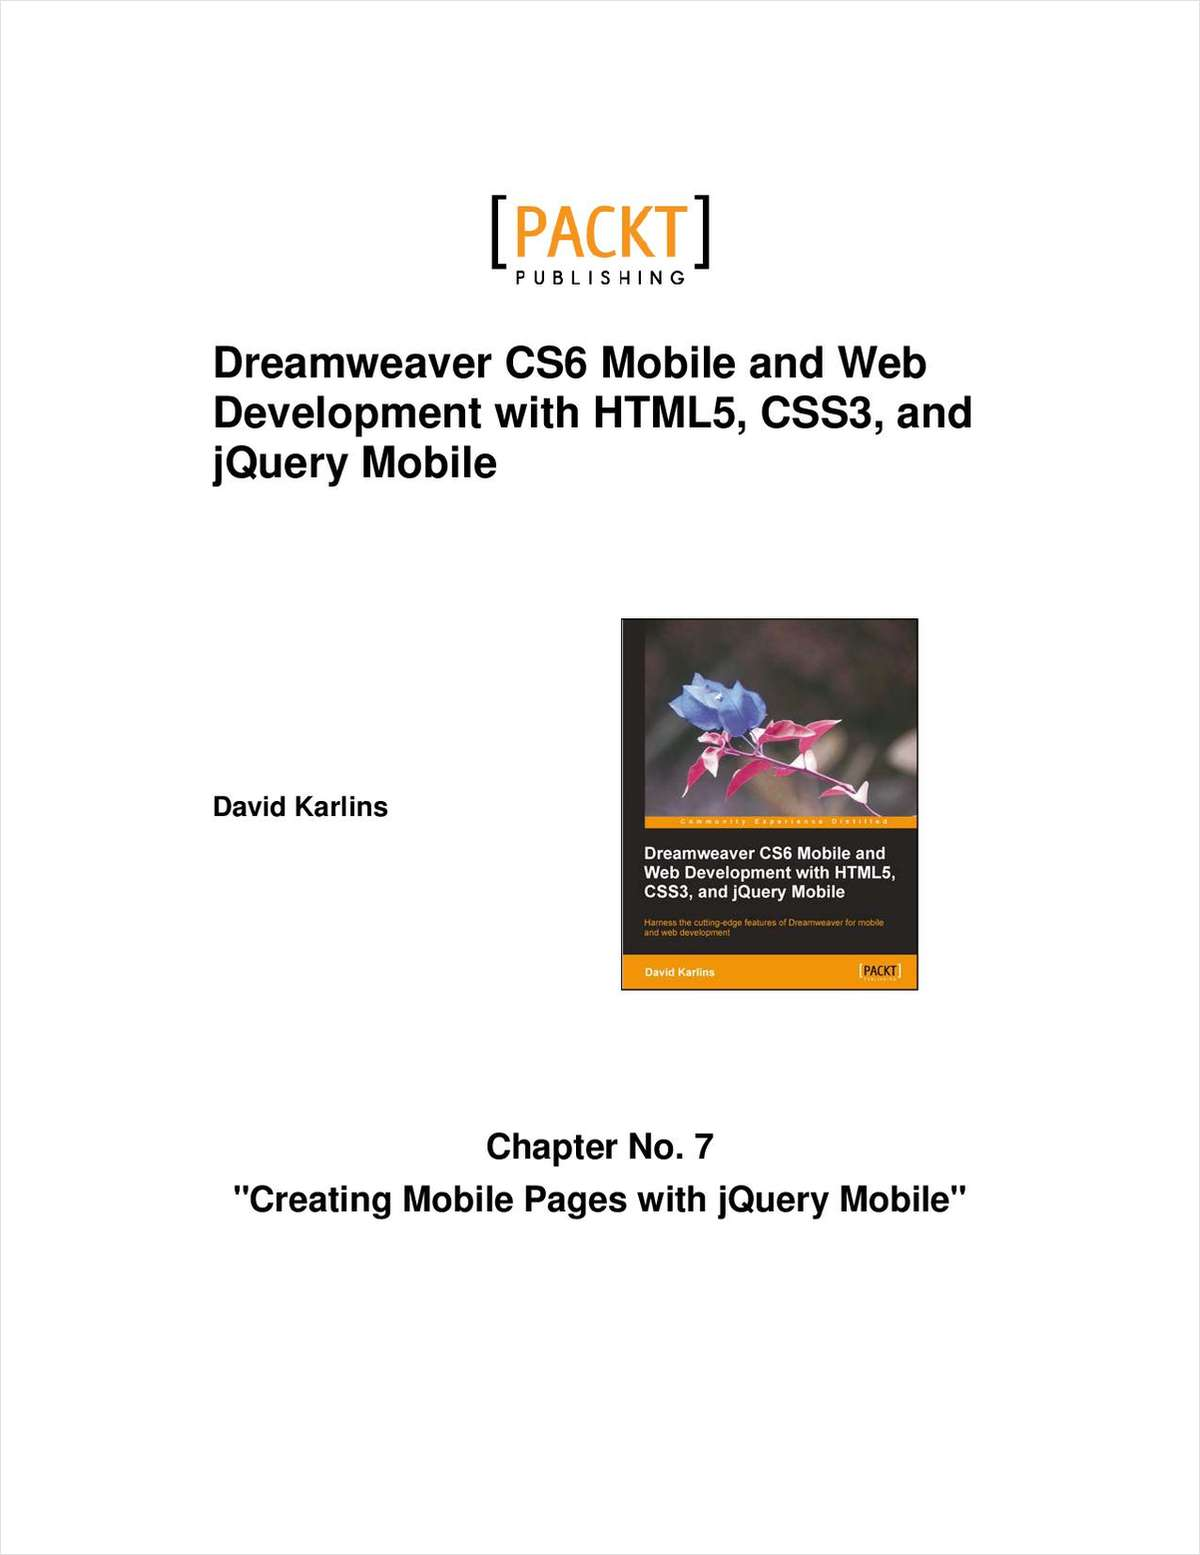 Dreamweaver CS6 Mobile and Web Development with HTML5, CSS3, and jQuery Mobile--Free 26 Page Excerpt